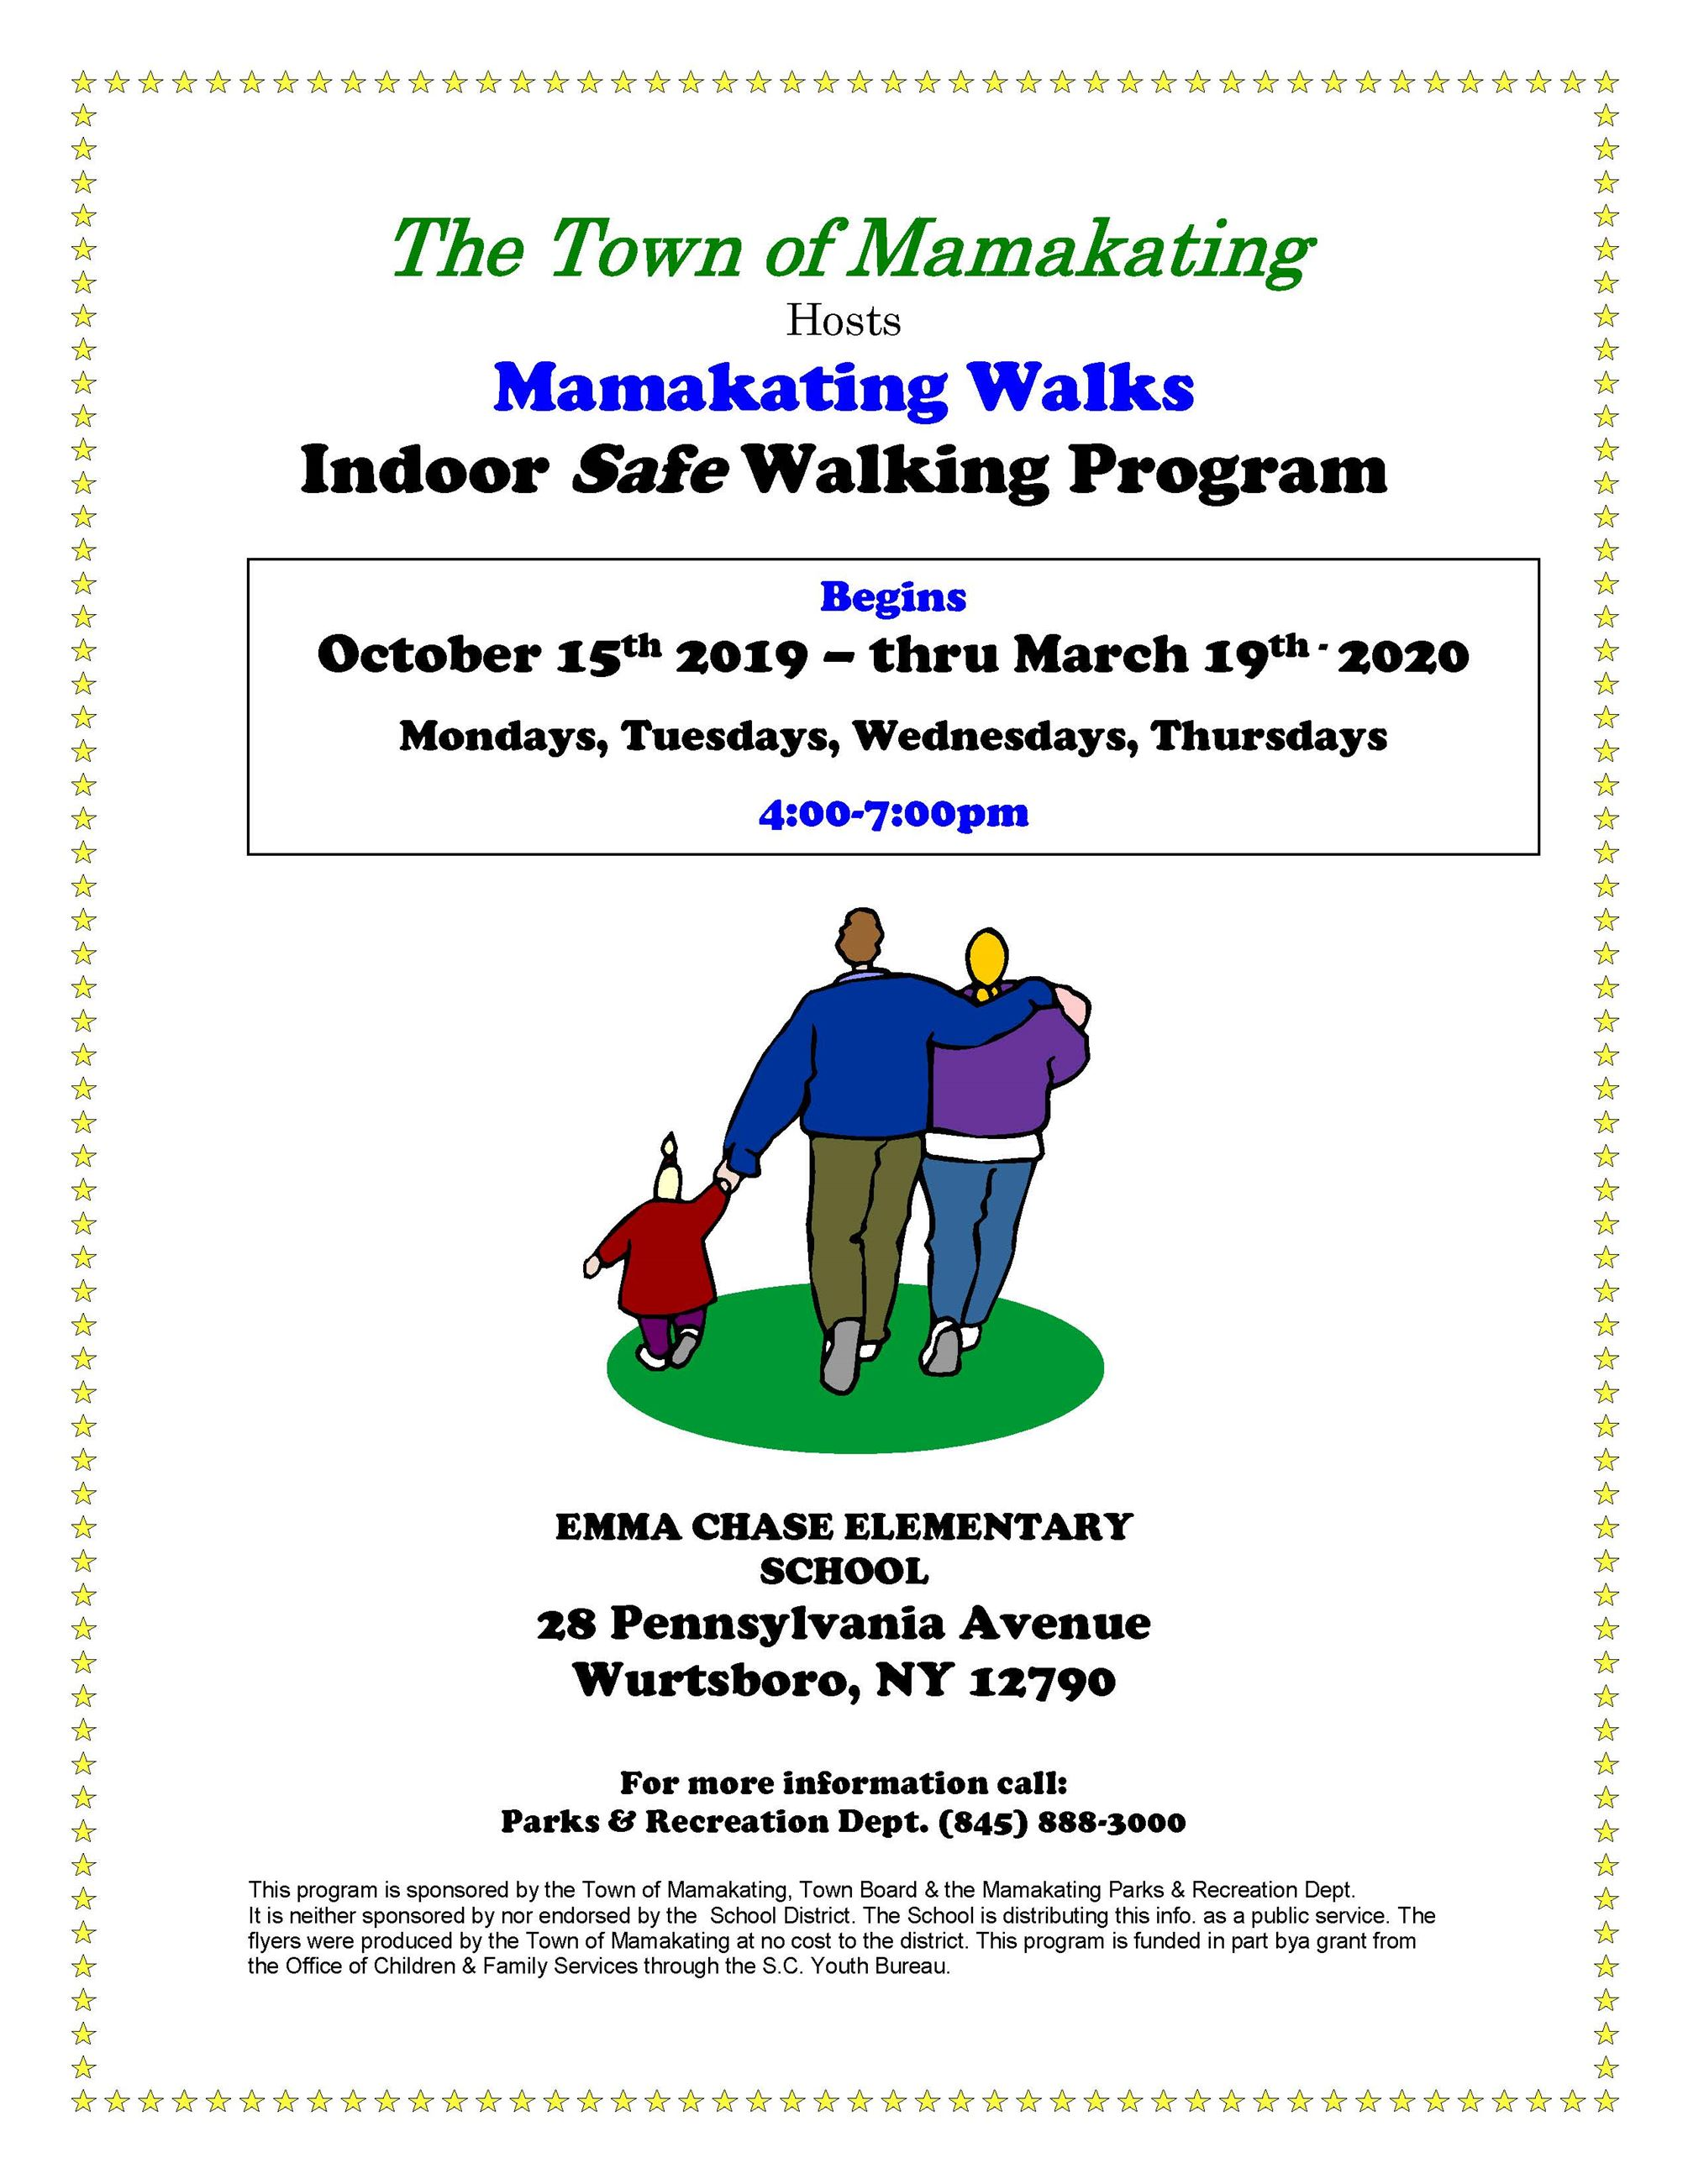 2019 Mamakating Walks Flyer